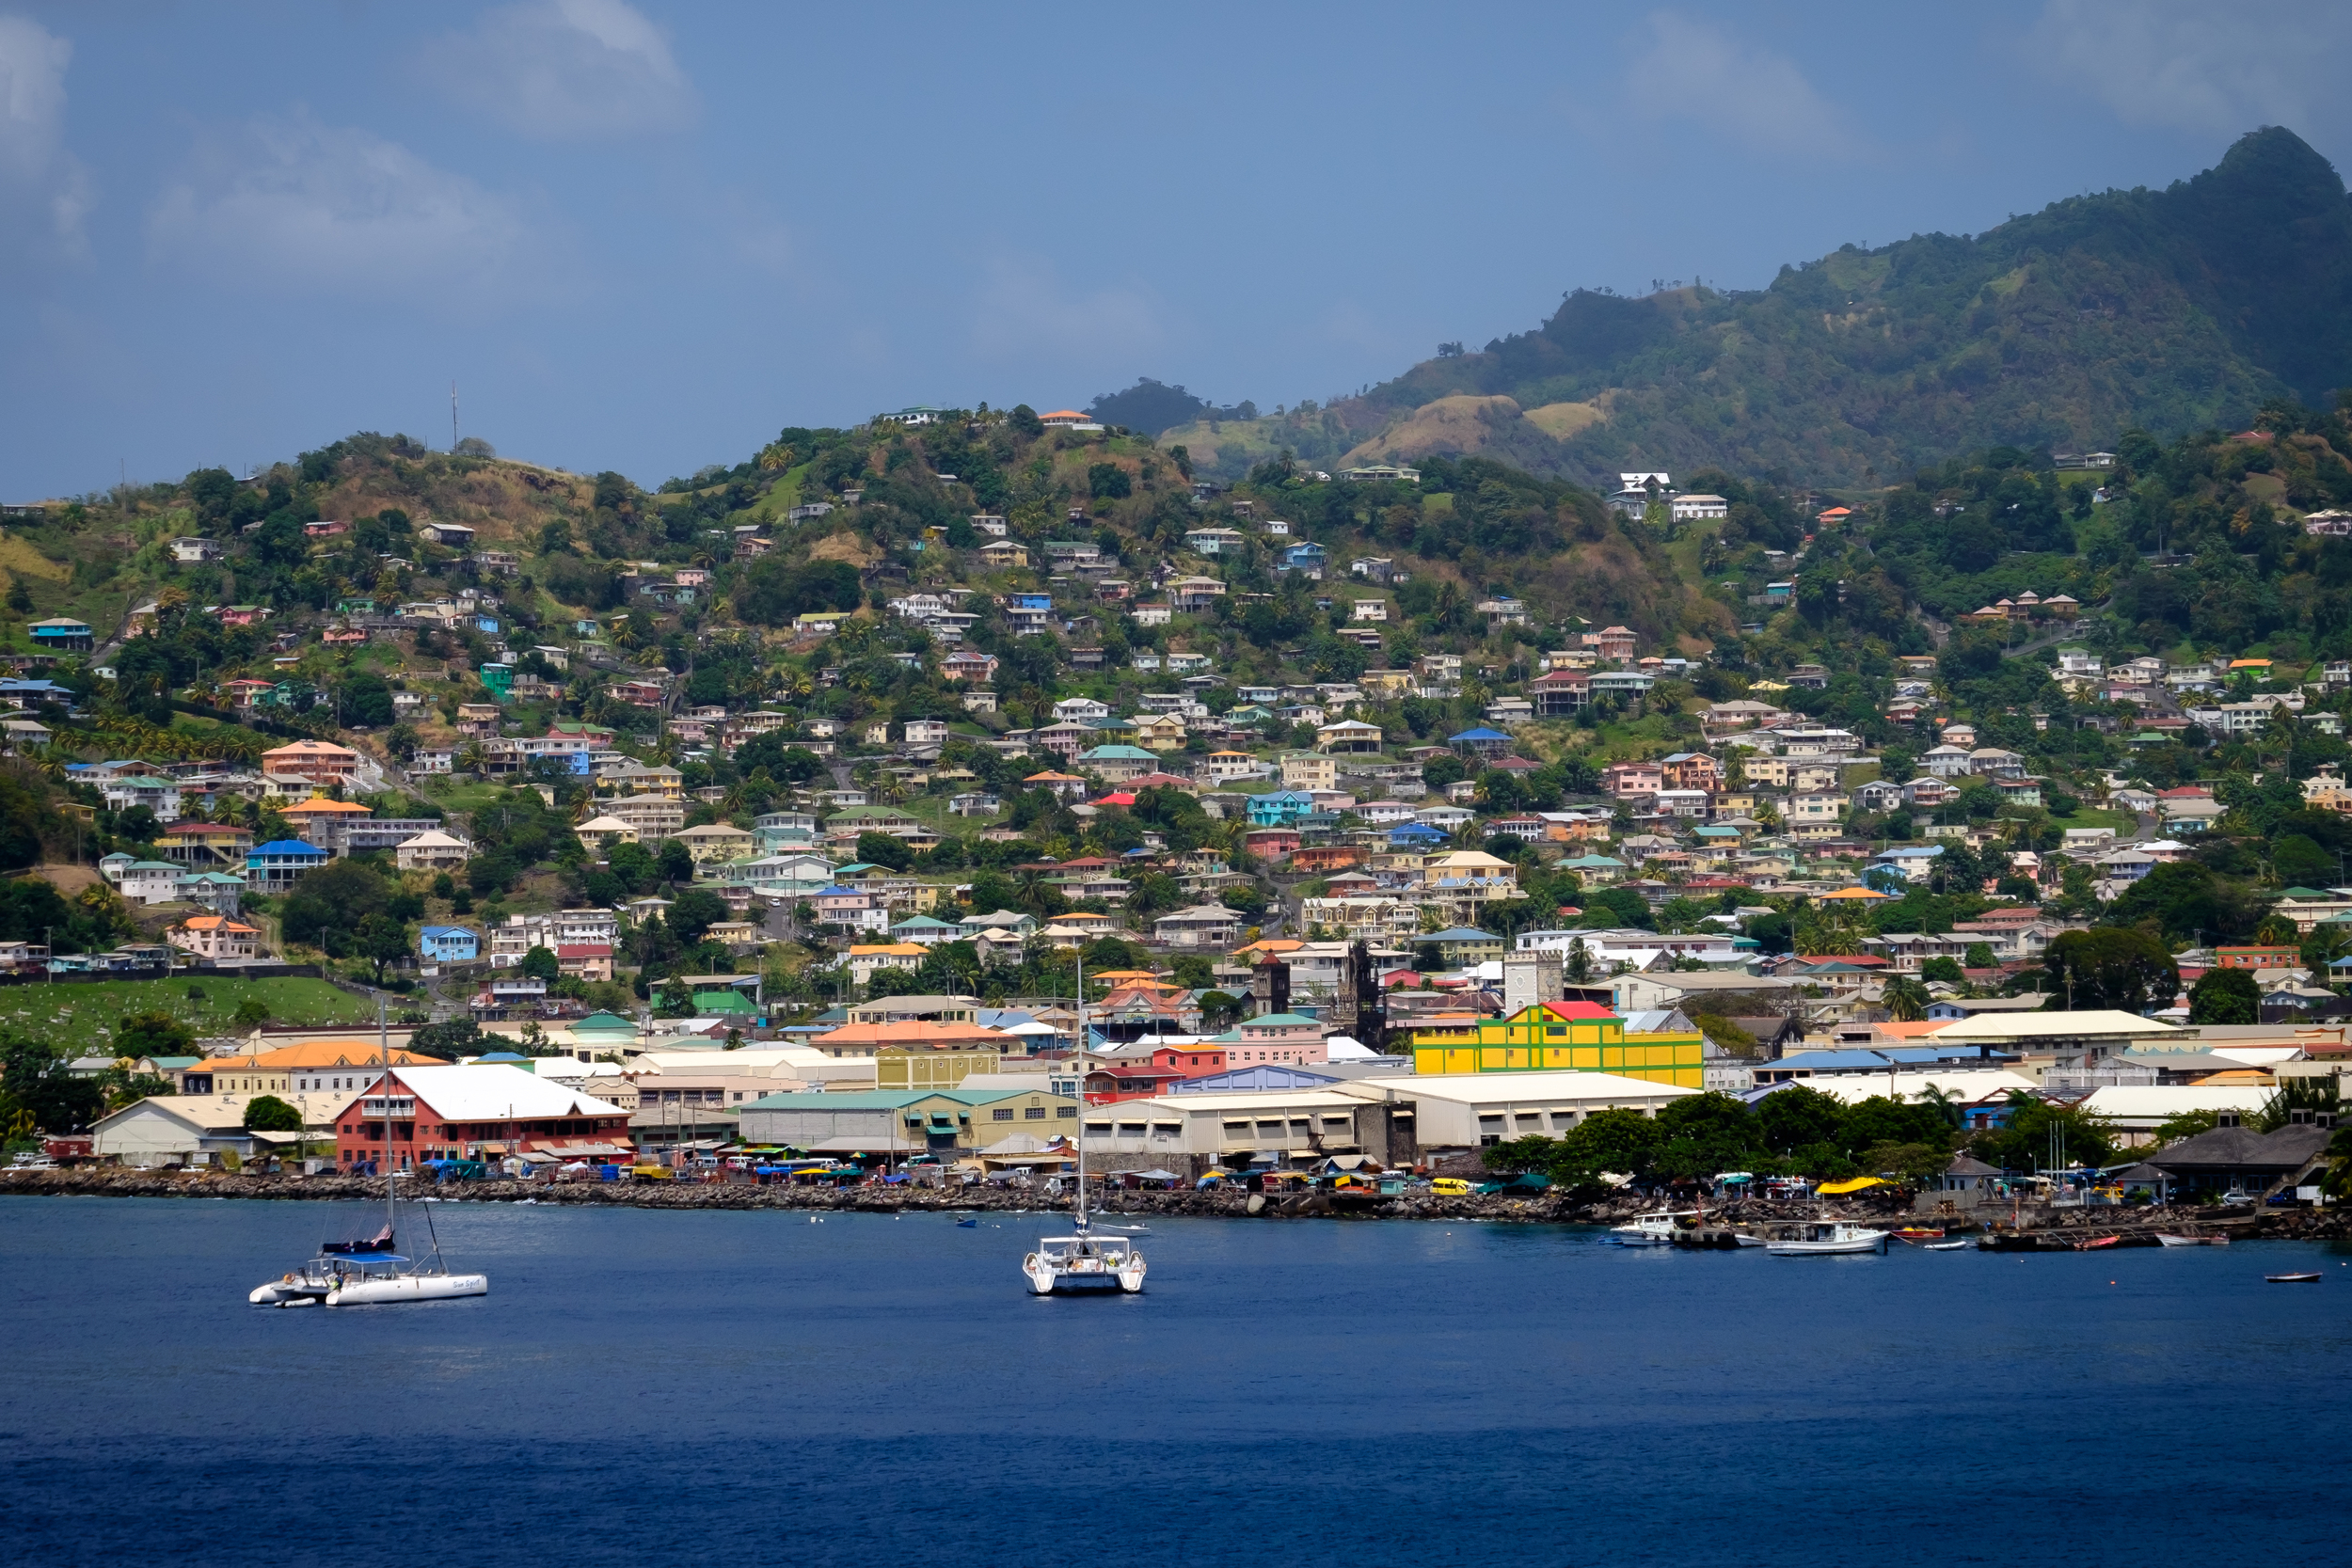 Kingston, St Vincent and the Grenadines